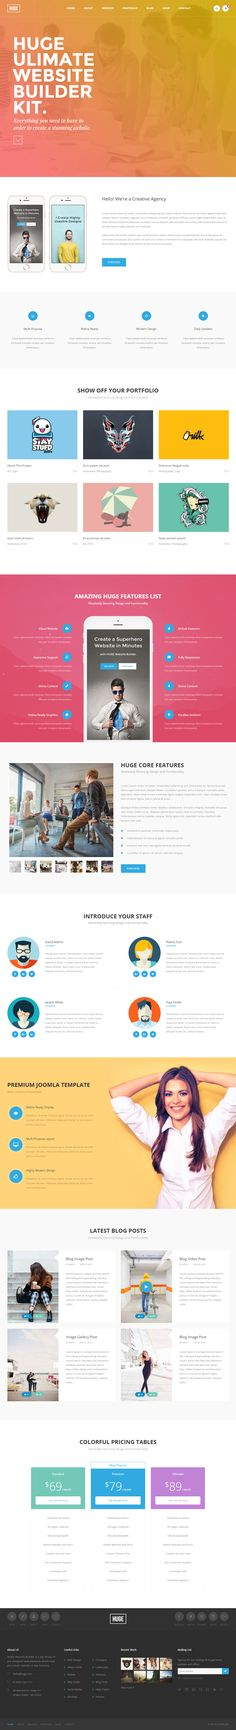 Intensy is Premium full Responsive Retina Parallax #Joomla - free test templates